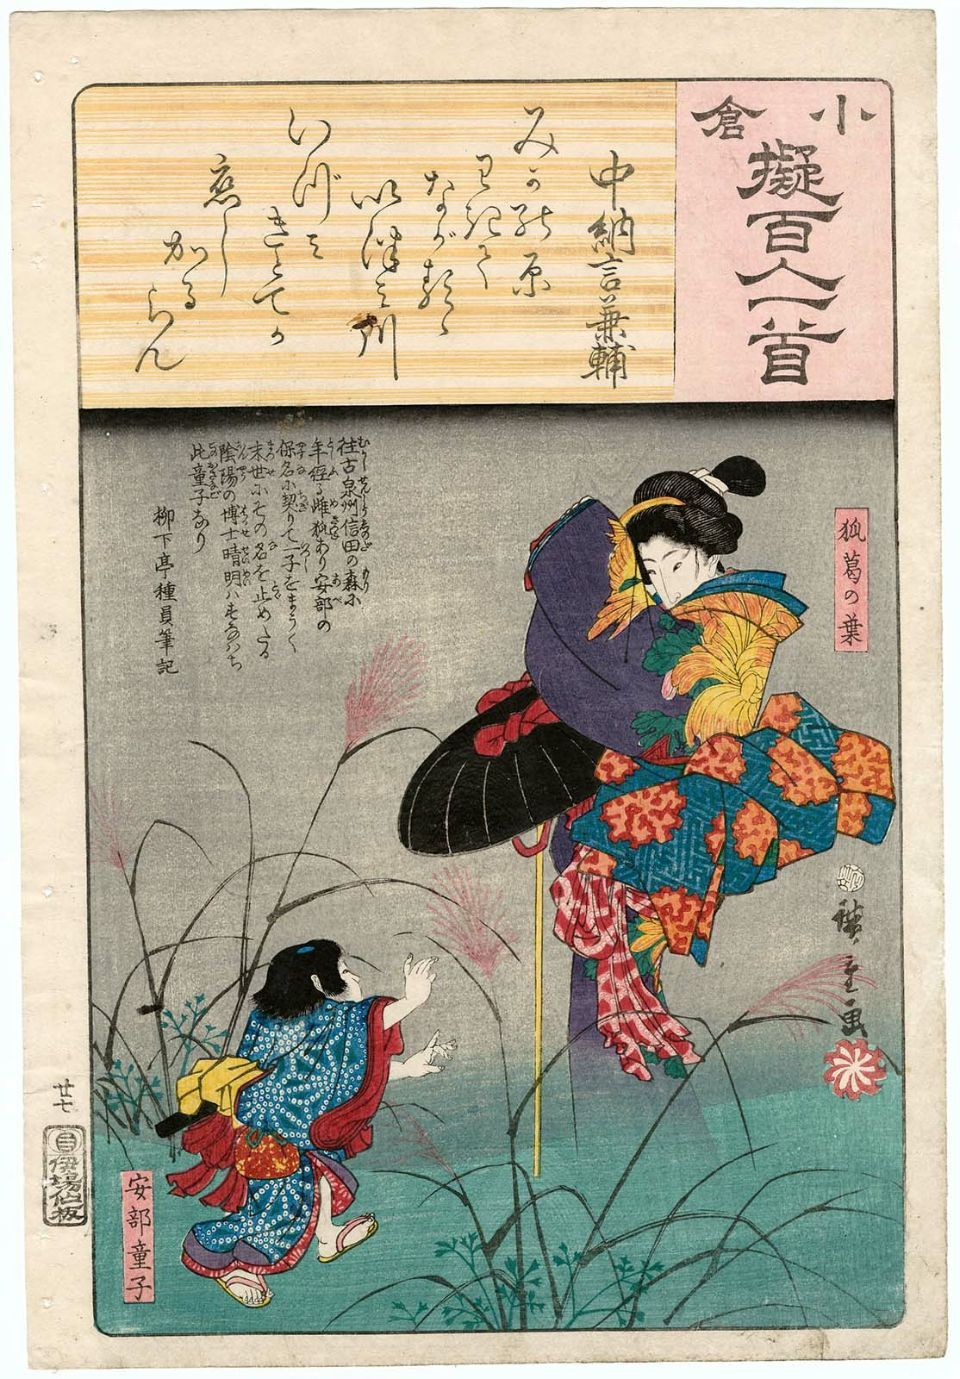 Poem By Chunagon Kanesuke The Fox Kuzunoha And The Abe Baby Kitsune Kuzunoha Abe Doji From The Series Ogura Kitsune Utagawa Hiroshige Museum Of Fine Arts